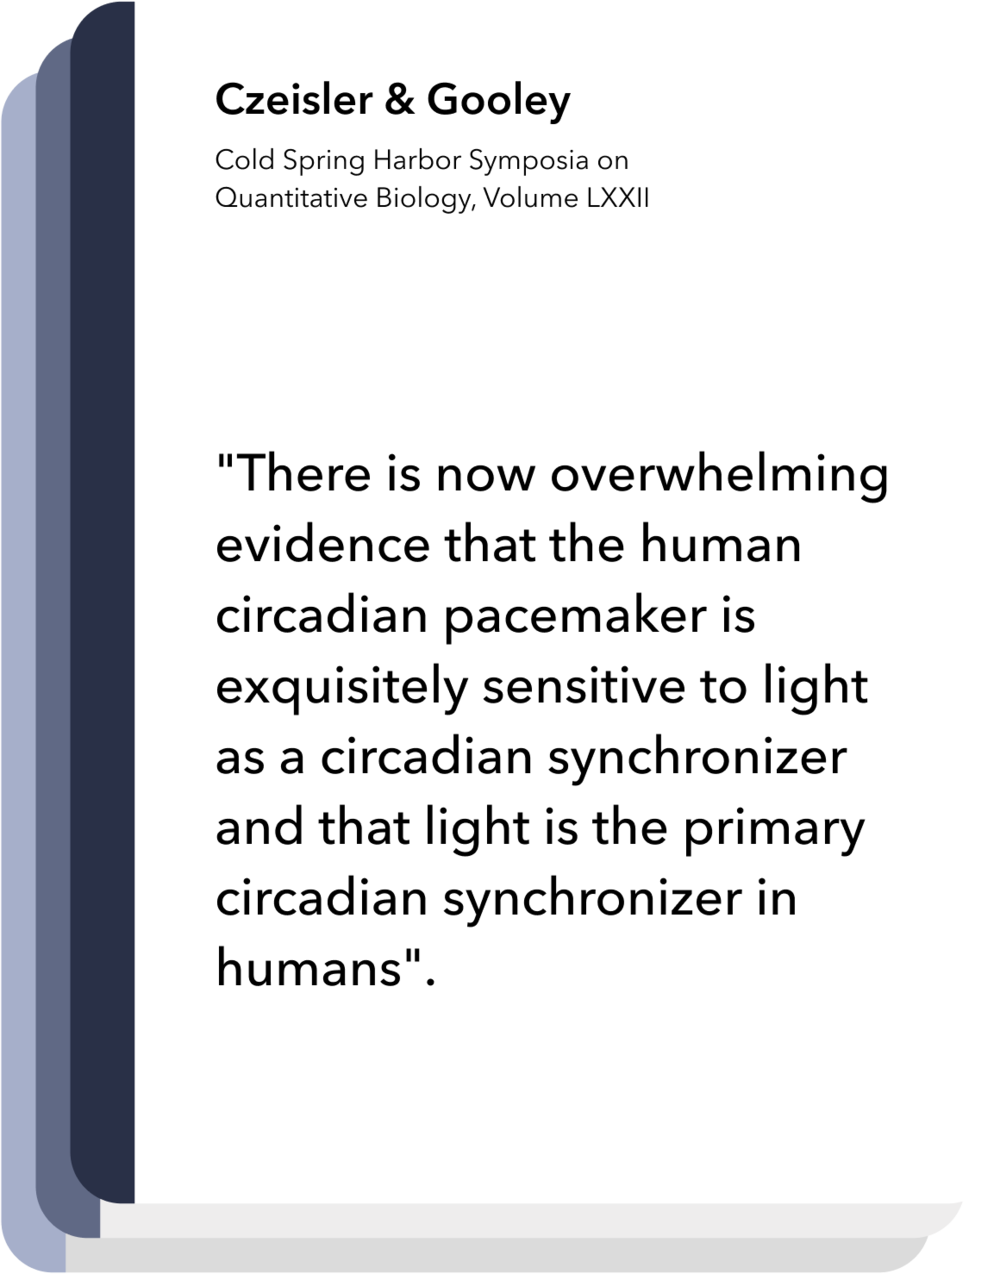 Timeshifter is based on the latest research in sleep and circadian neuroscience: Light